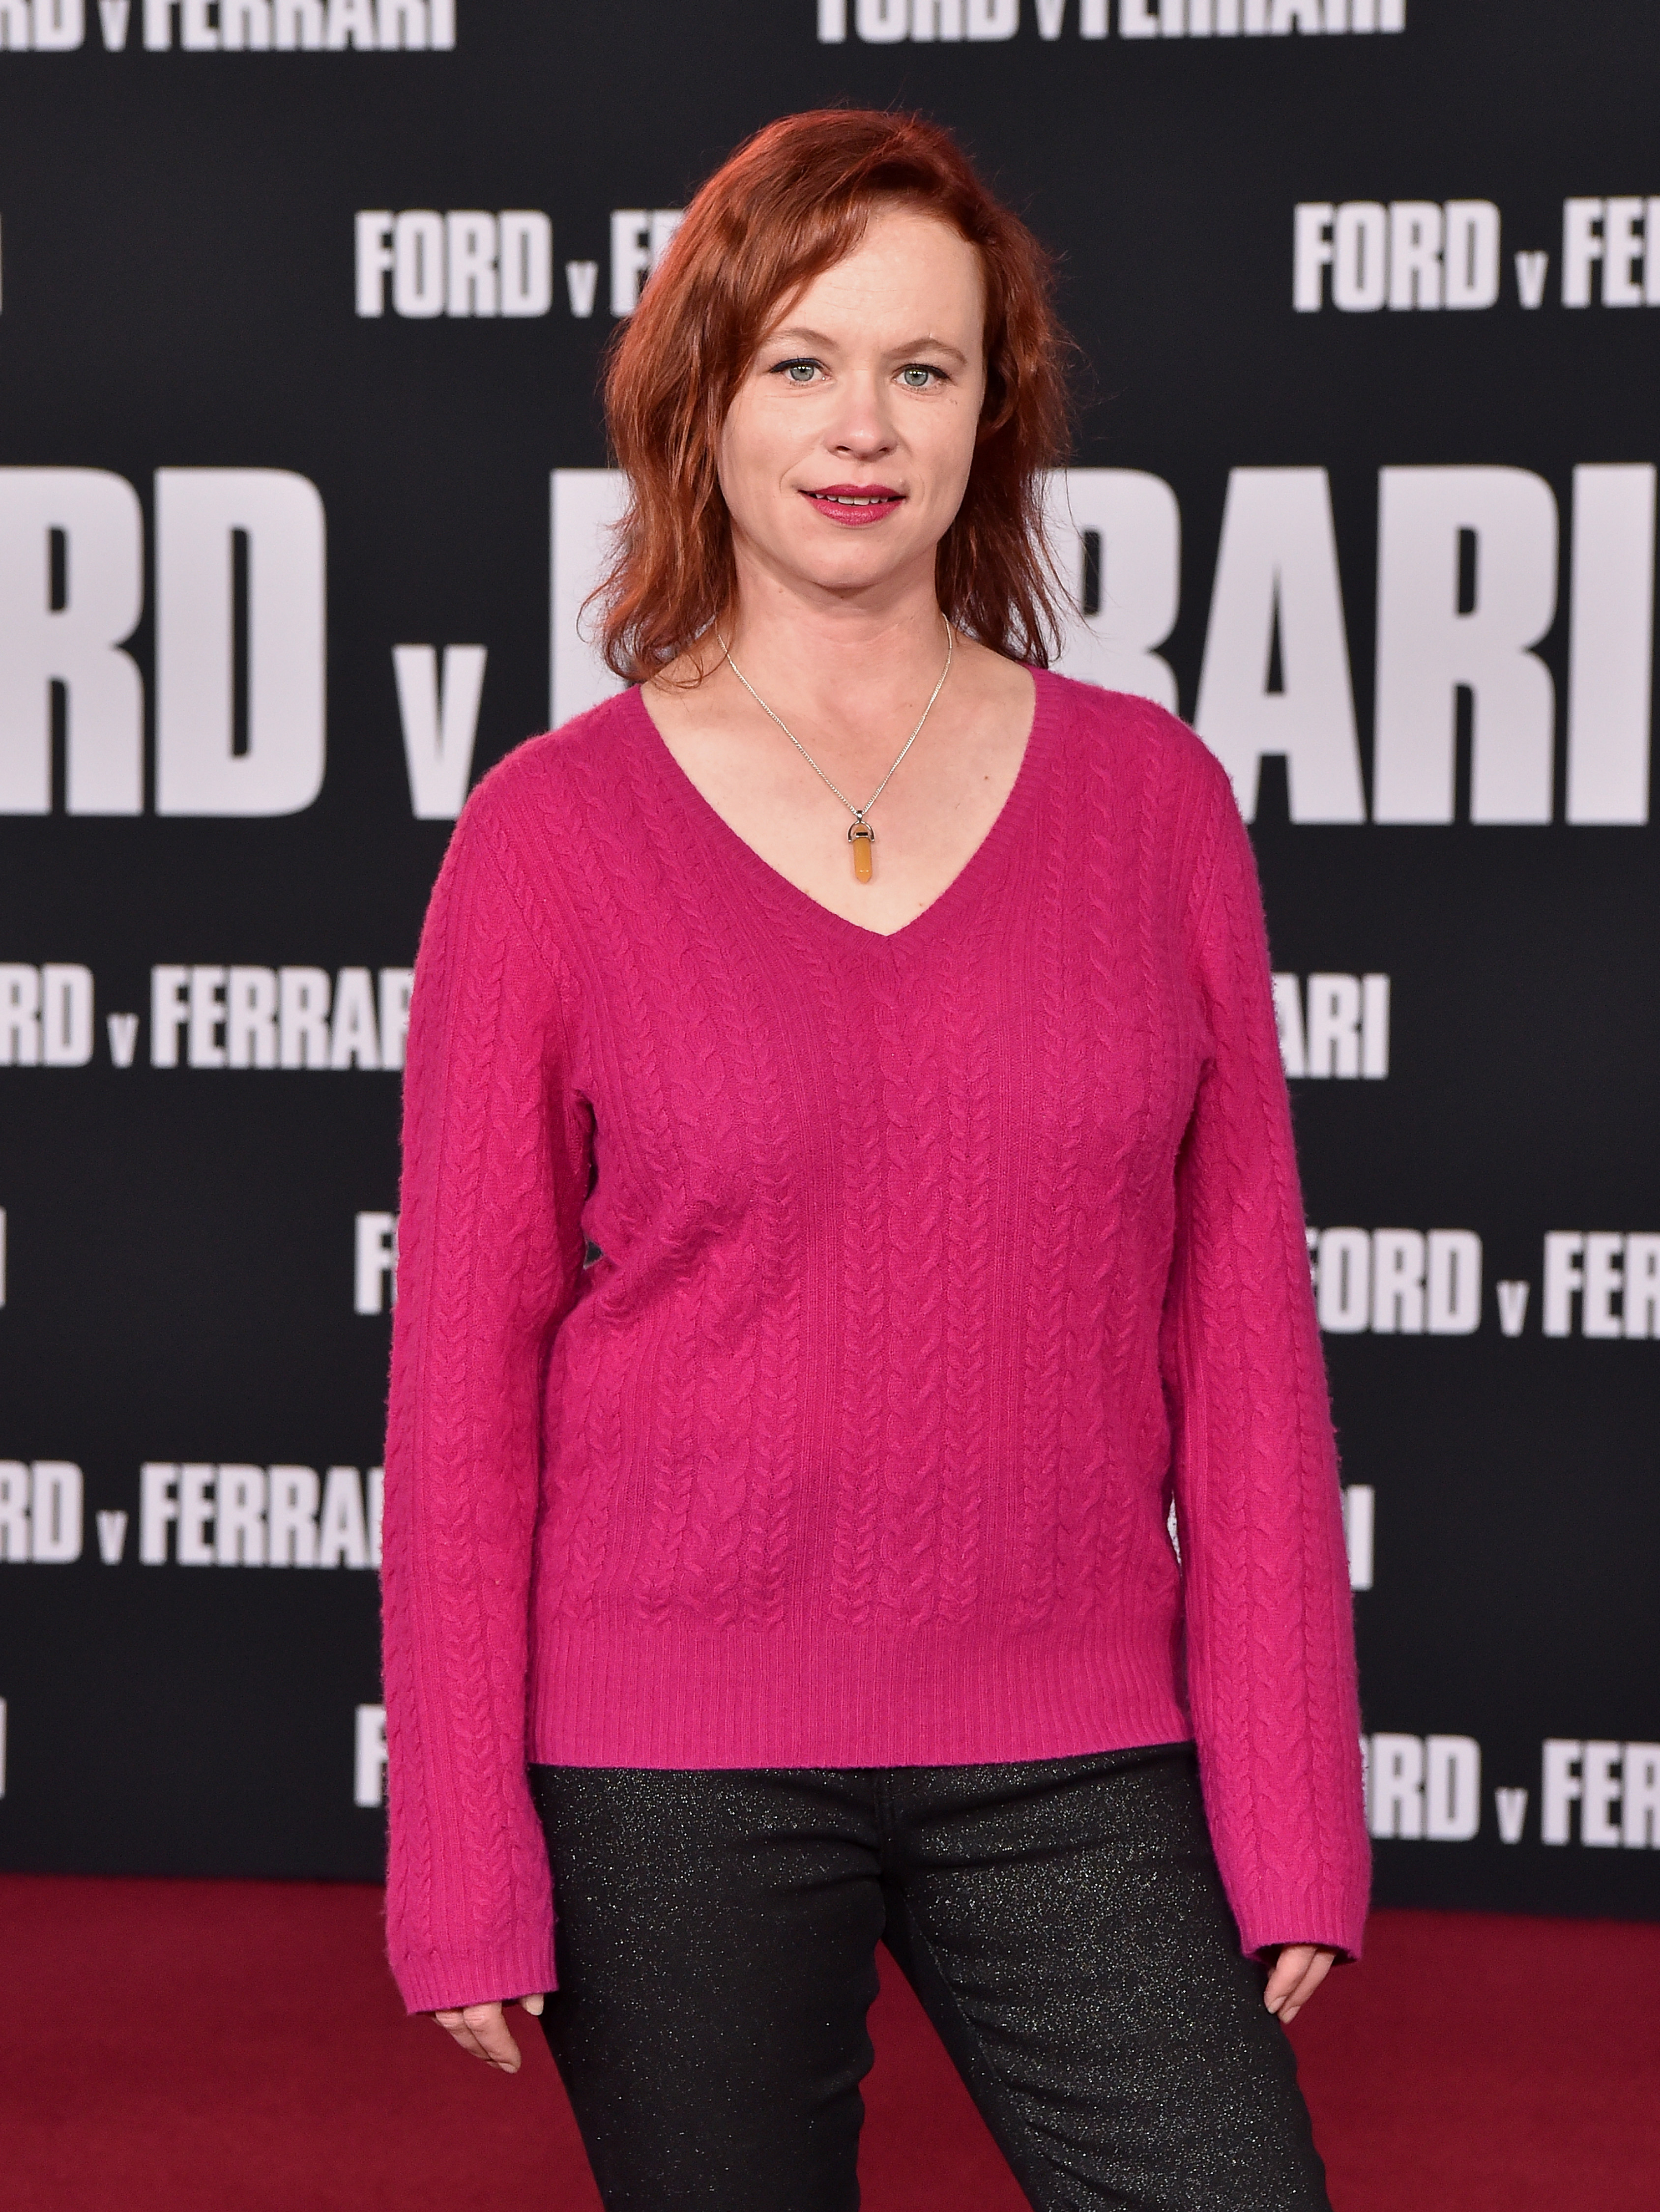 Thora Birch at an event for Ford v Ferrari (2019)